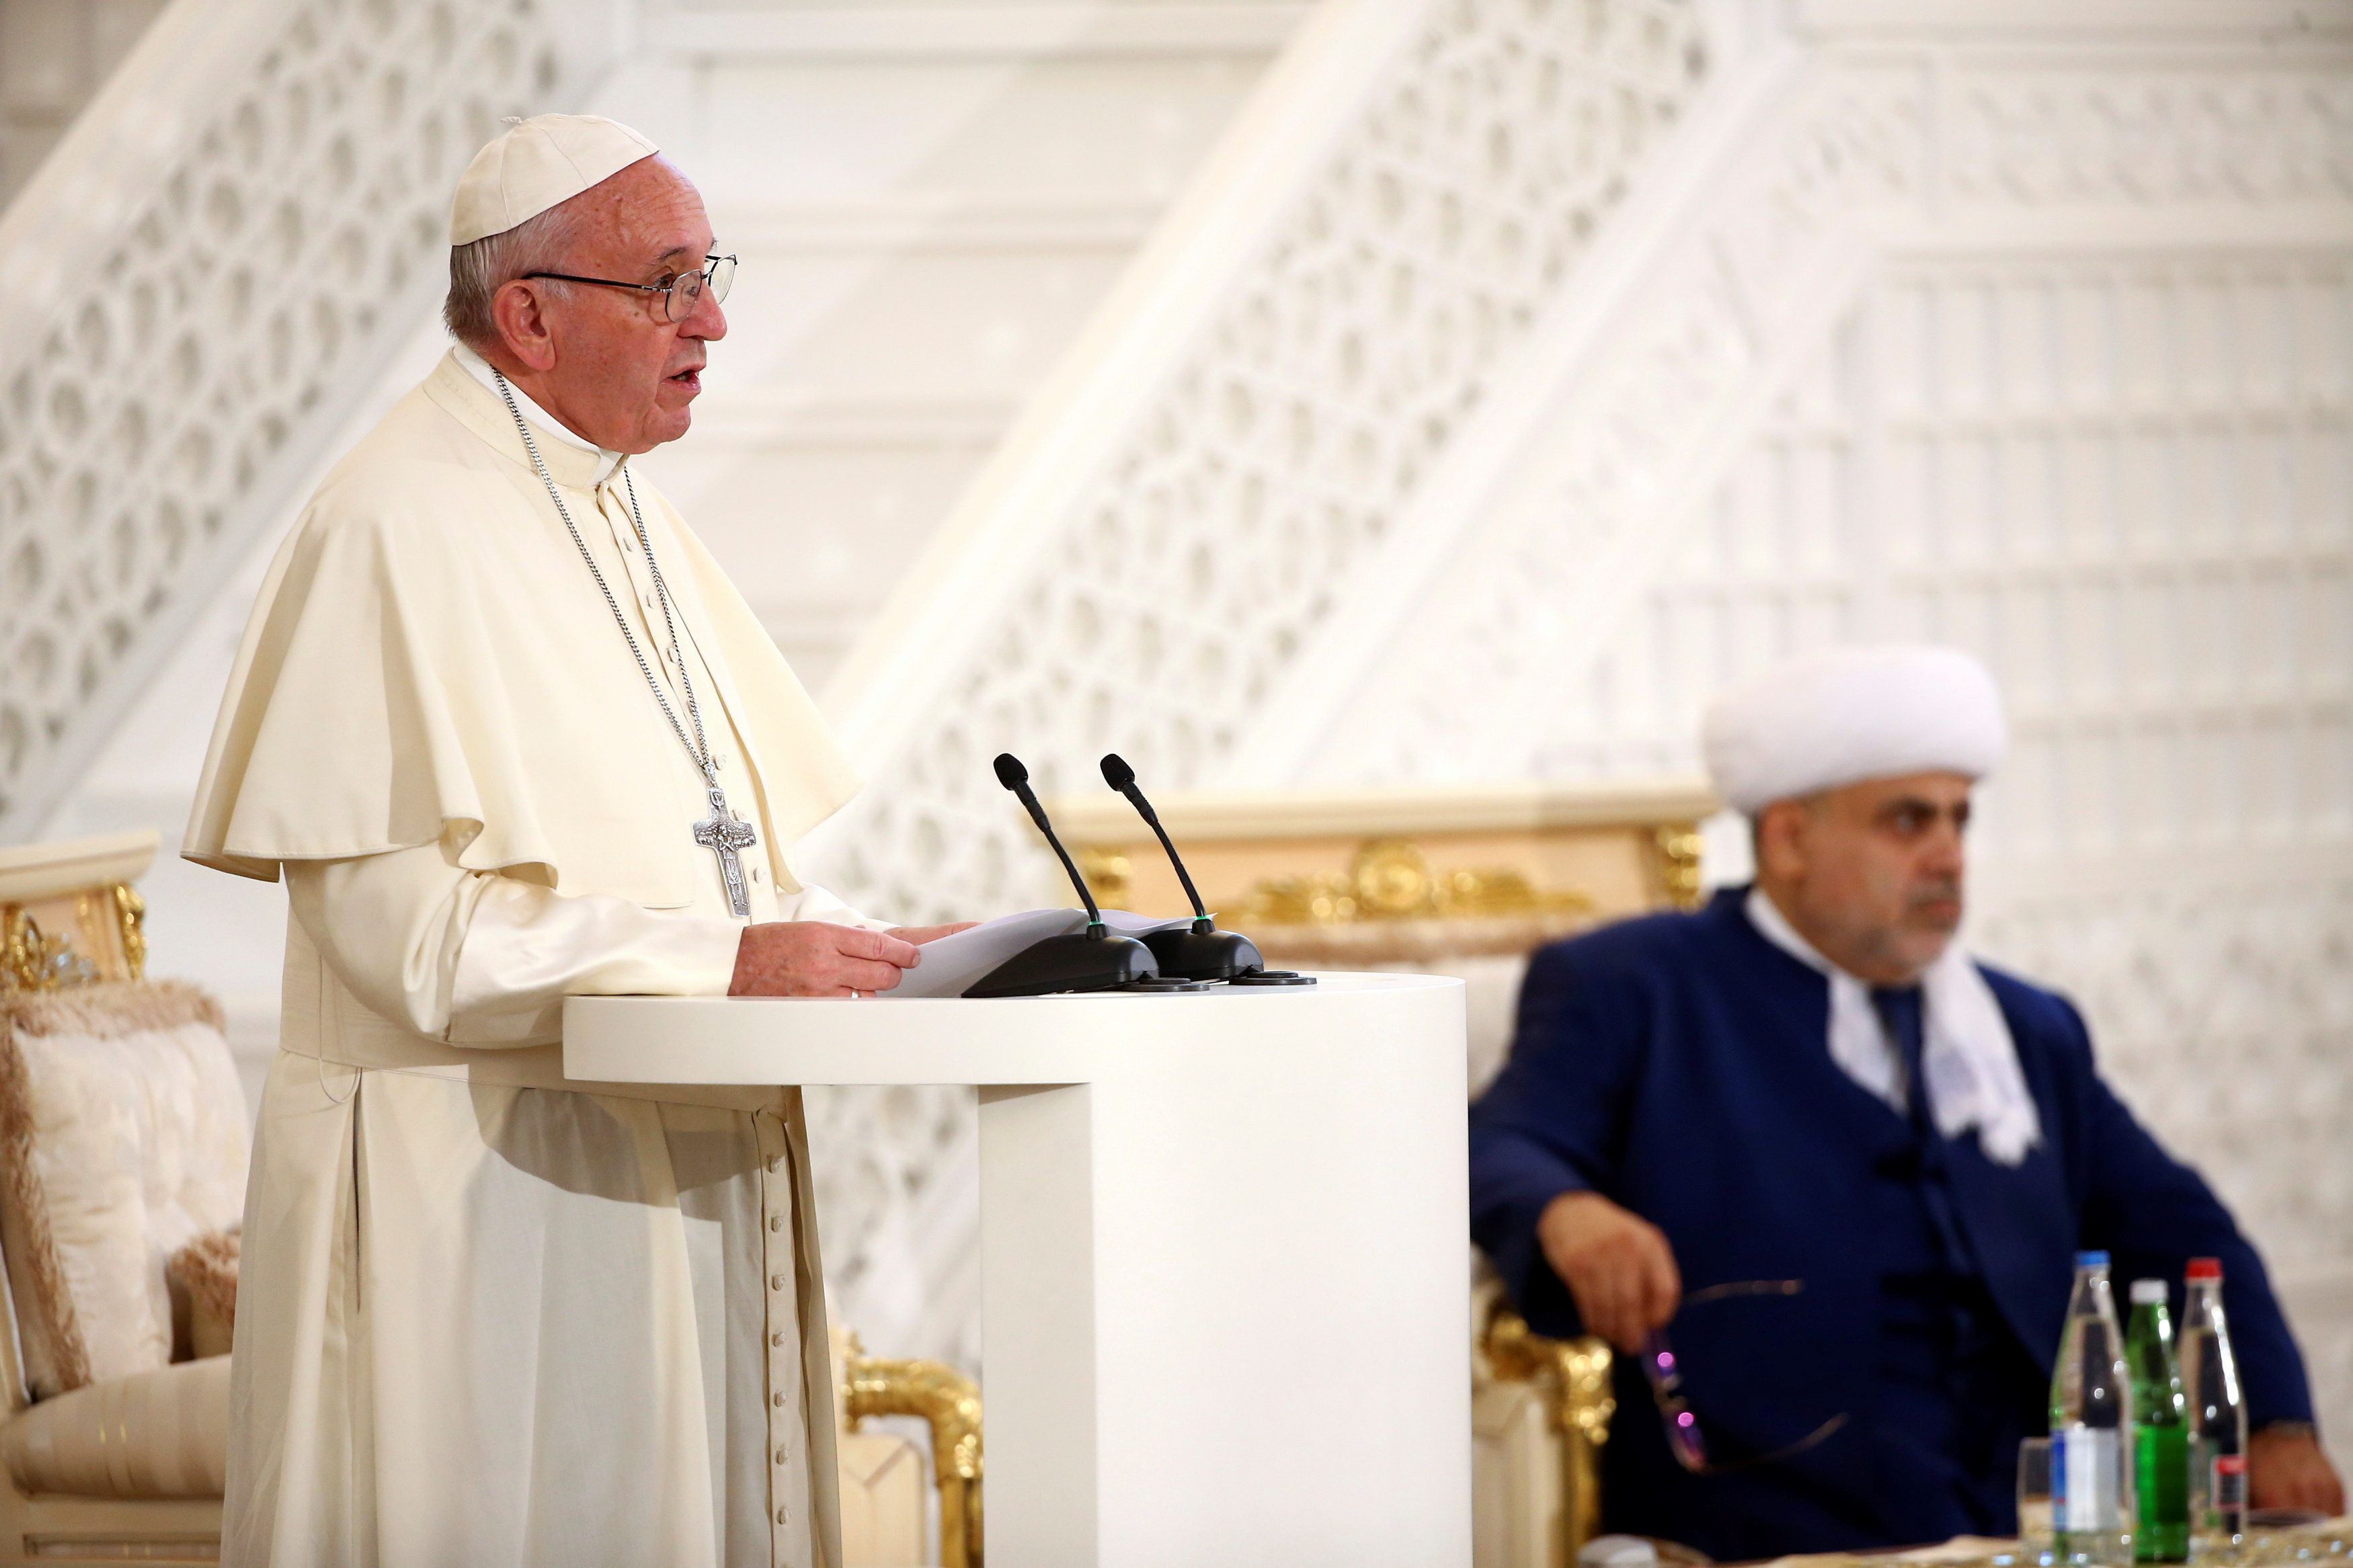 Pope Francis talks during a meeting with Azerbaijan's Grand Mufti Allahshukur Pashazade at the Heydar Mosque in Baku, Azerbaijan October 2, 2016. REUTERS/Alessandro Bianchi